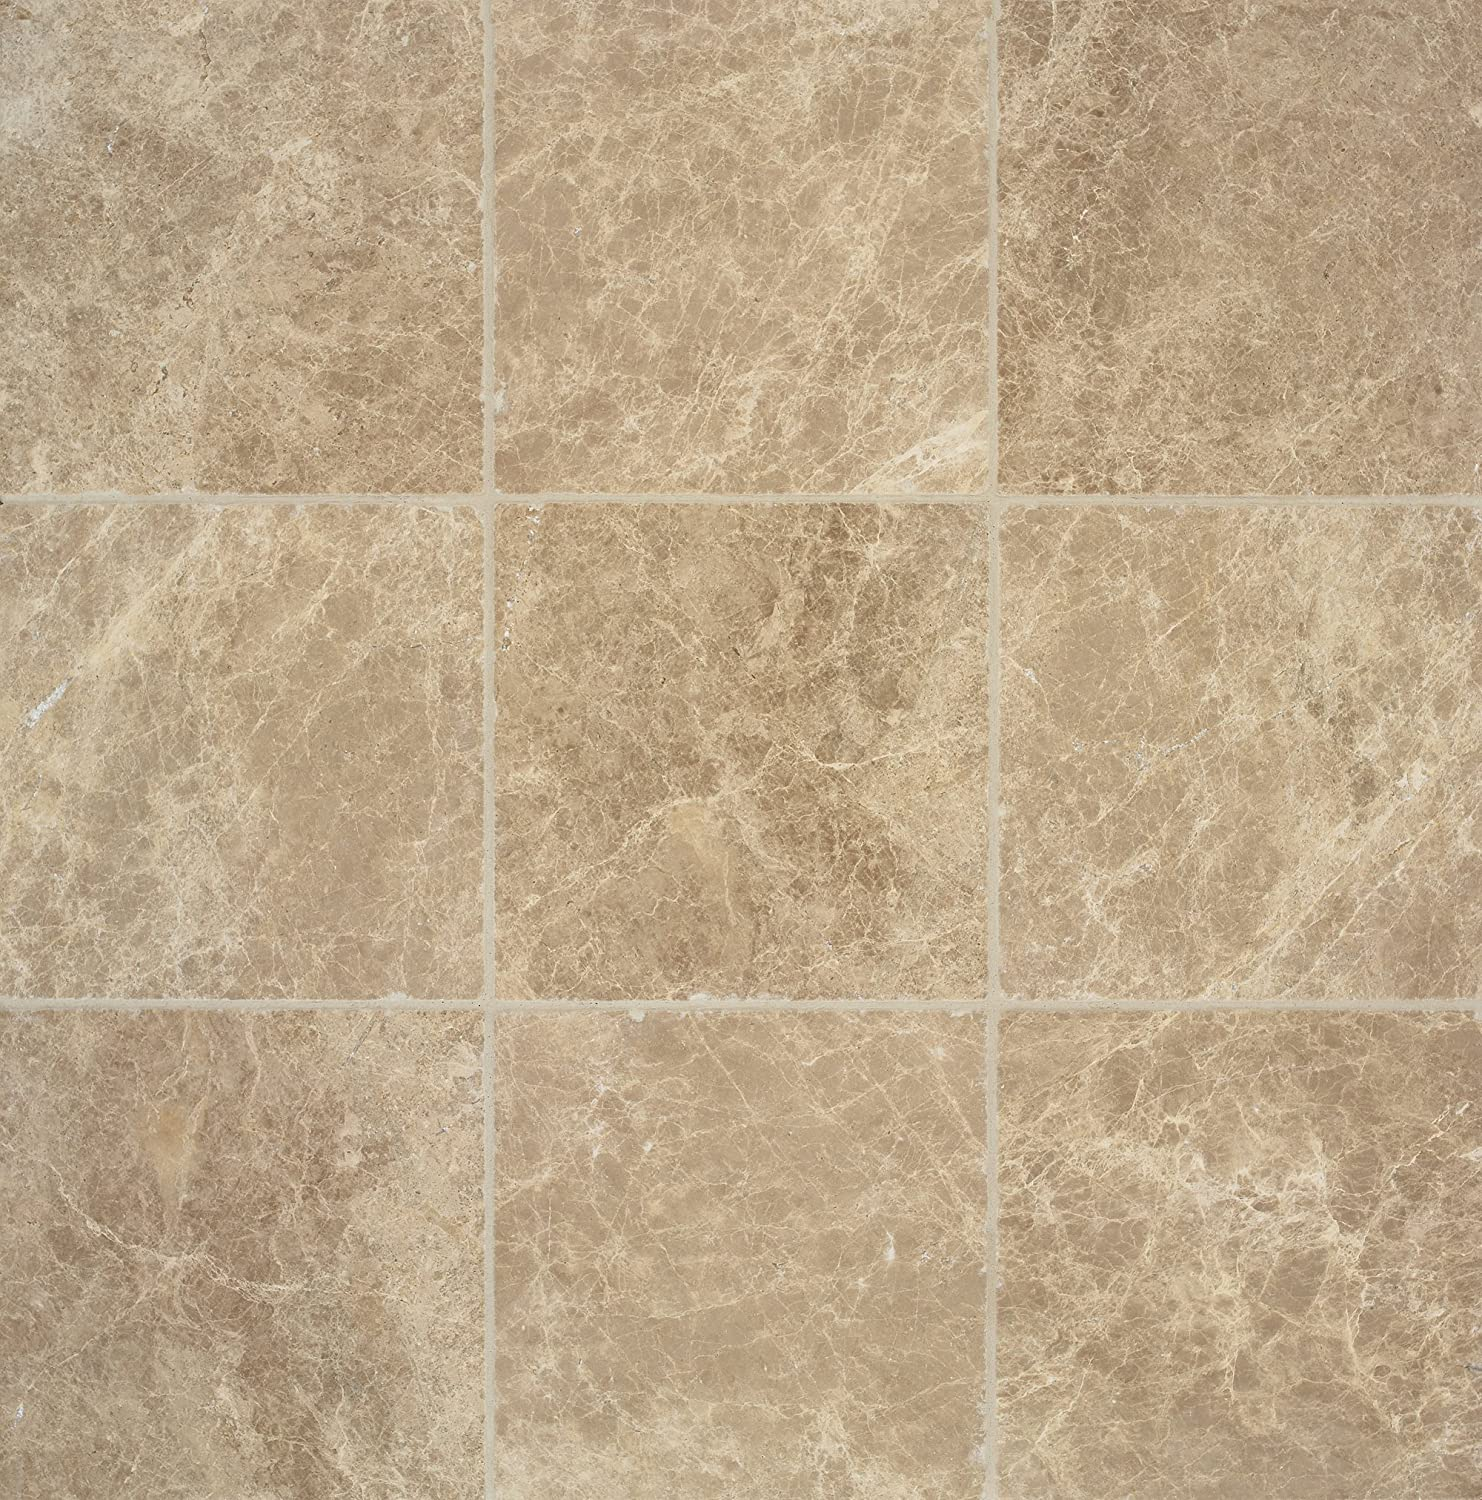 Arizona Tile 6 by 6-Inch Tumbled Marble Tile, Emperador Light, 6 ...